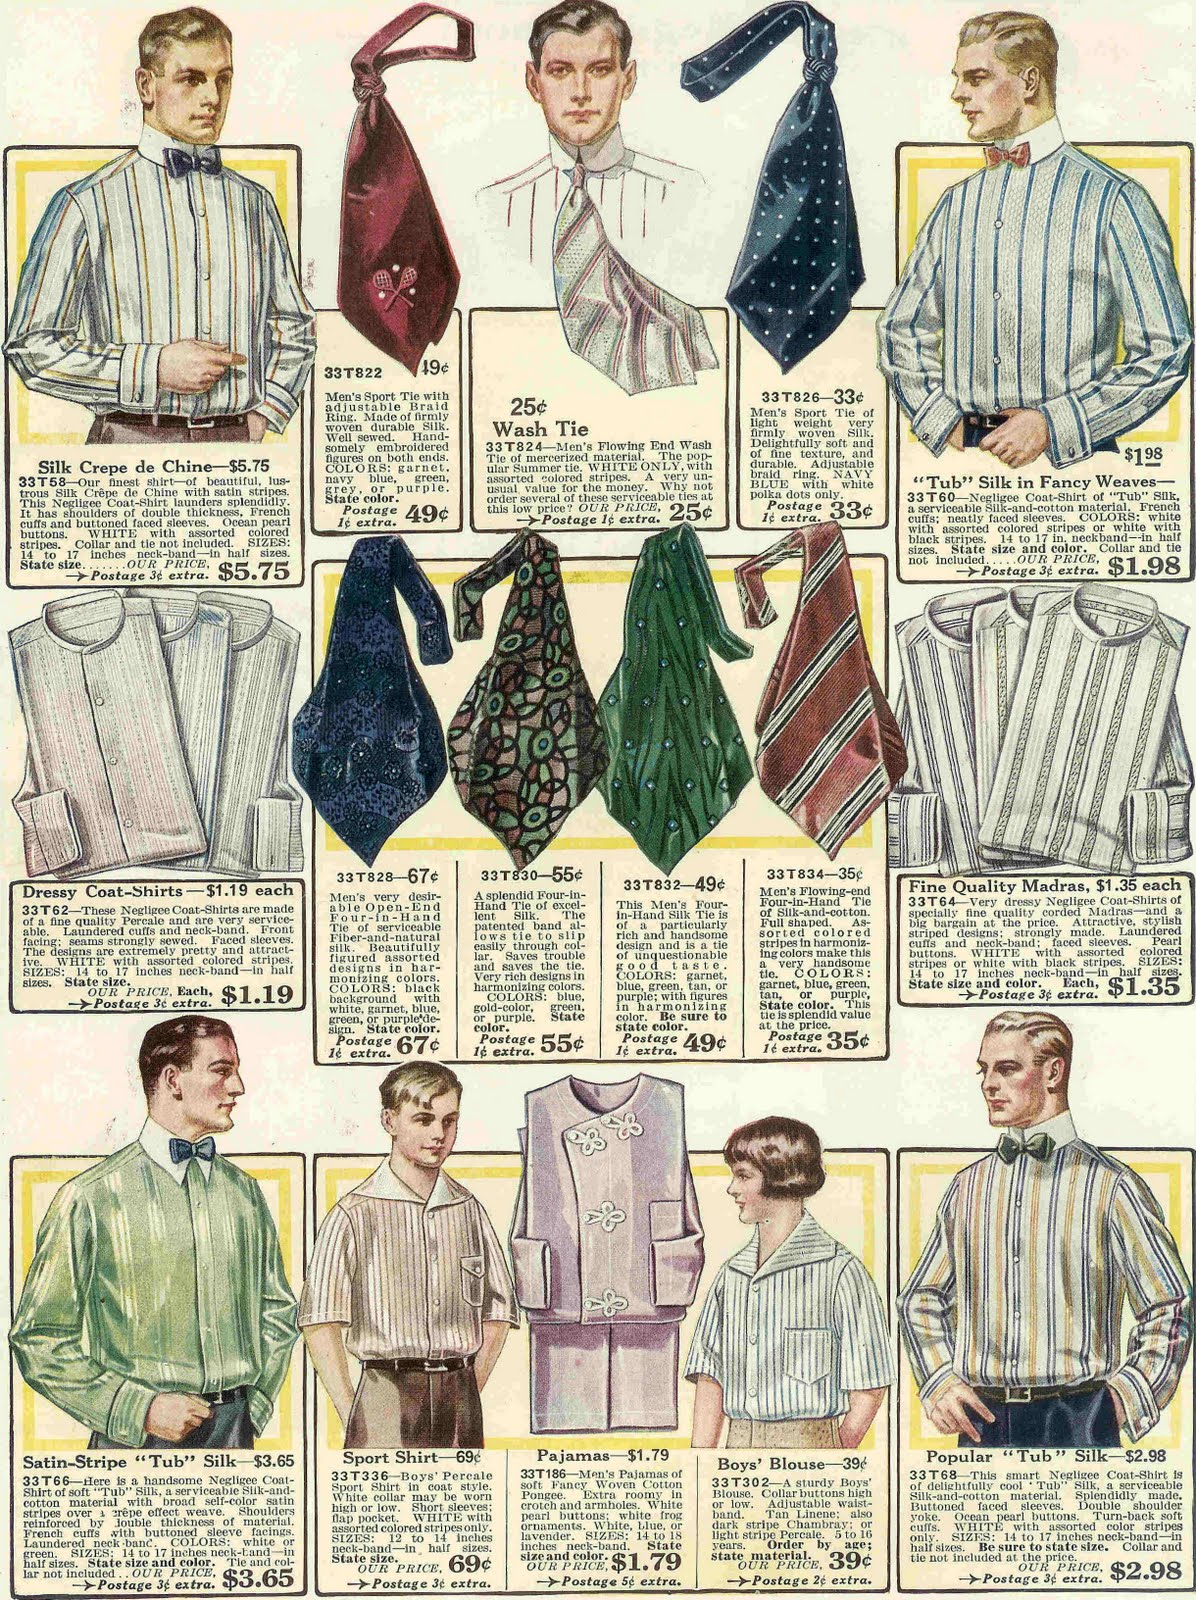 Tie clipart men's clothing Clothes Clothes 1917 Fashion from